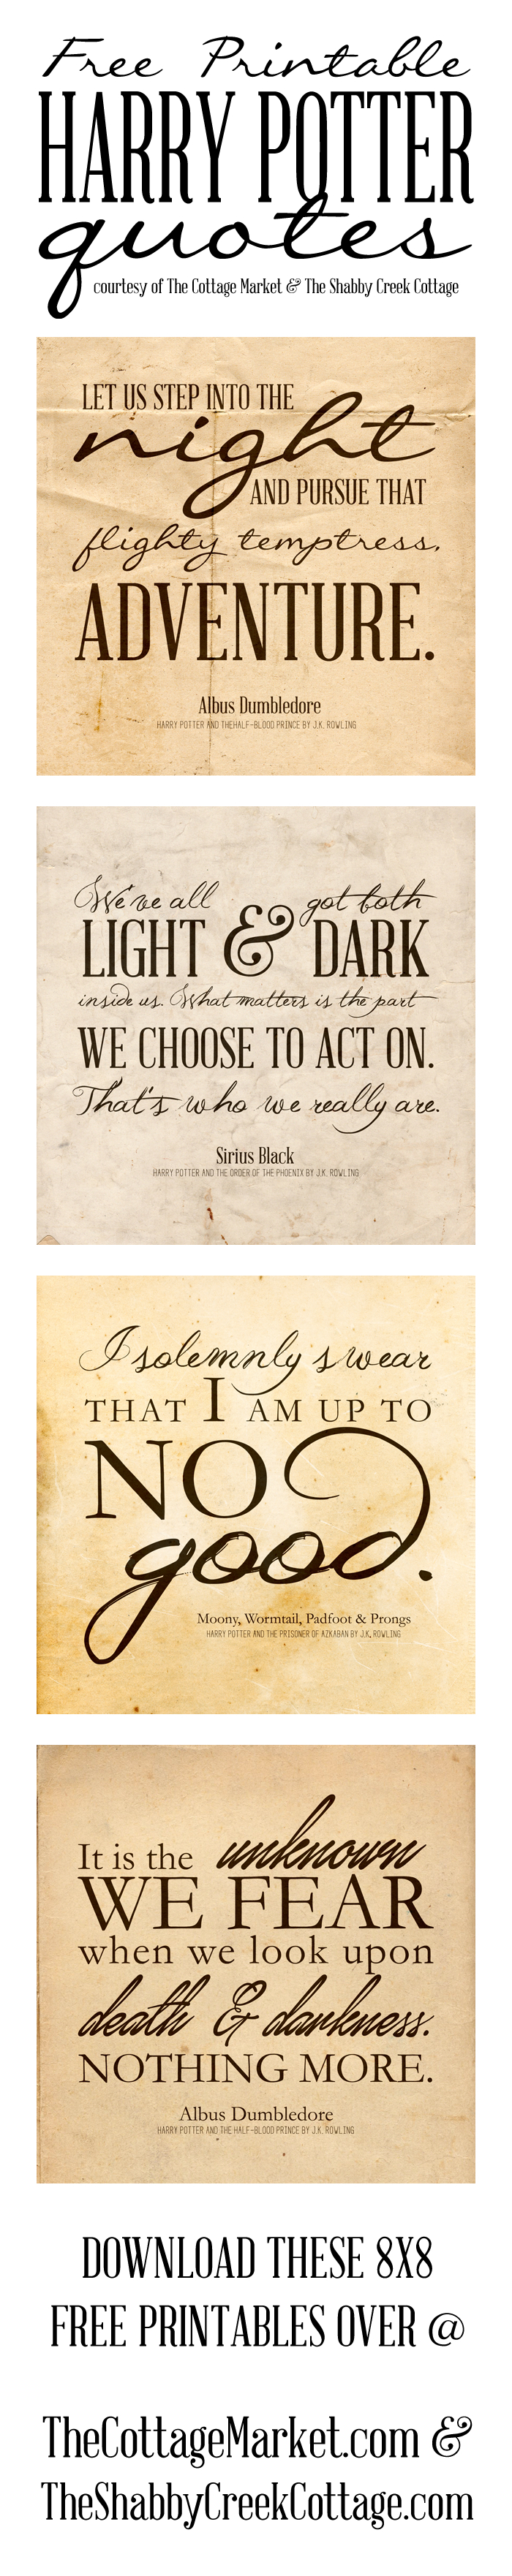 Free Printable Harry Potter Quotes | The Cottage Market - Free Printable Harry Potter Pictures